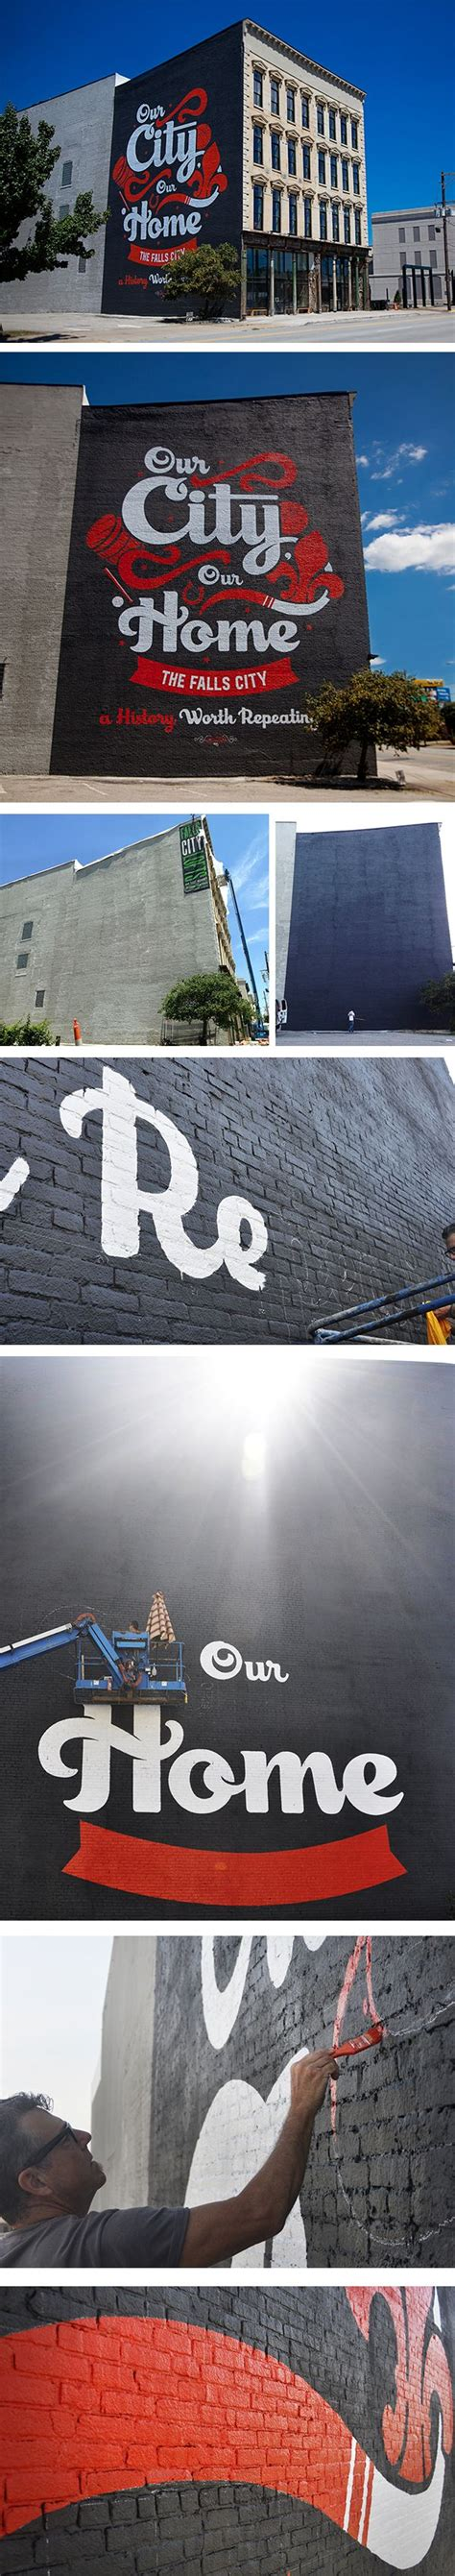 environmental design visual communication 25 trending signwriting ideas on pinterest sign writing